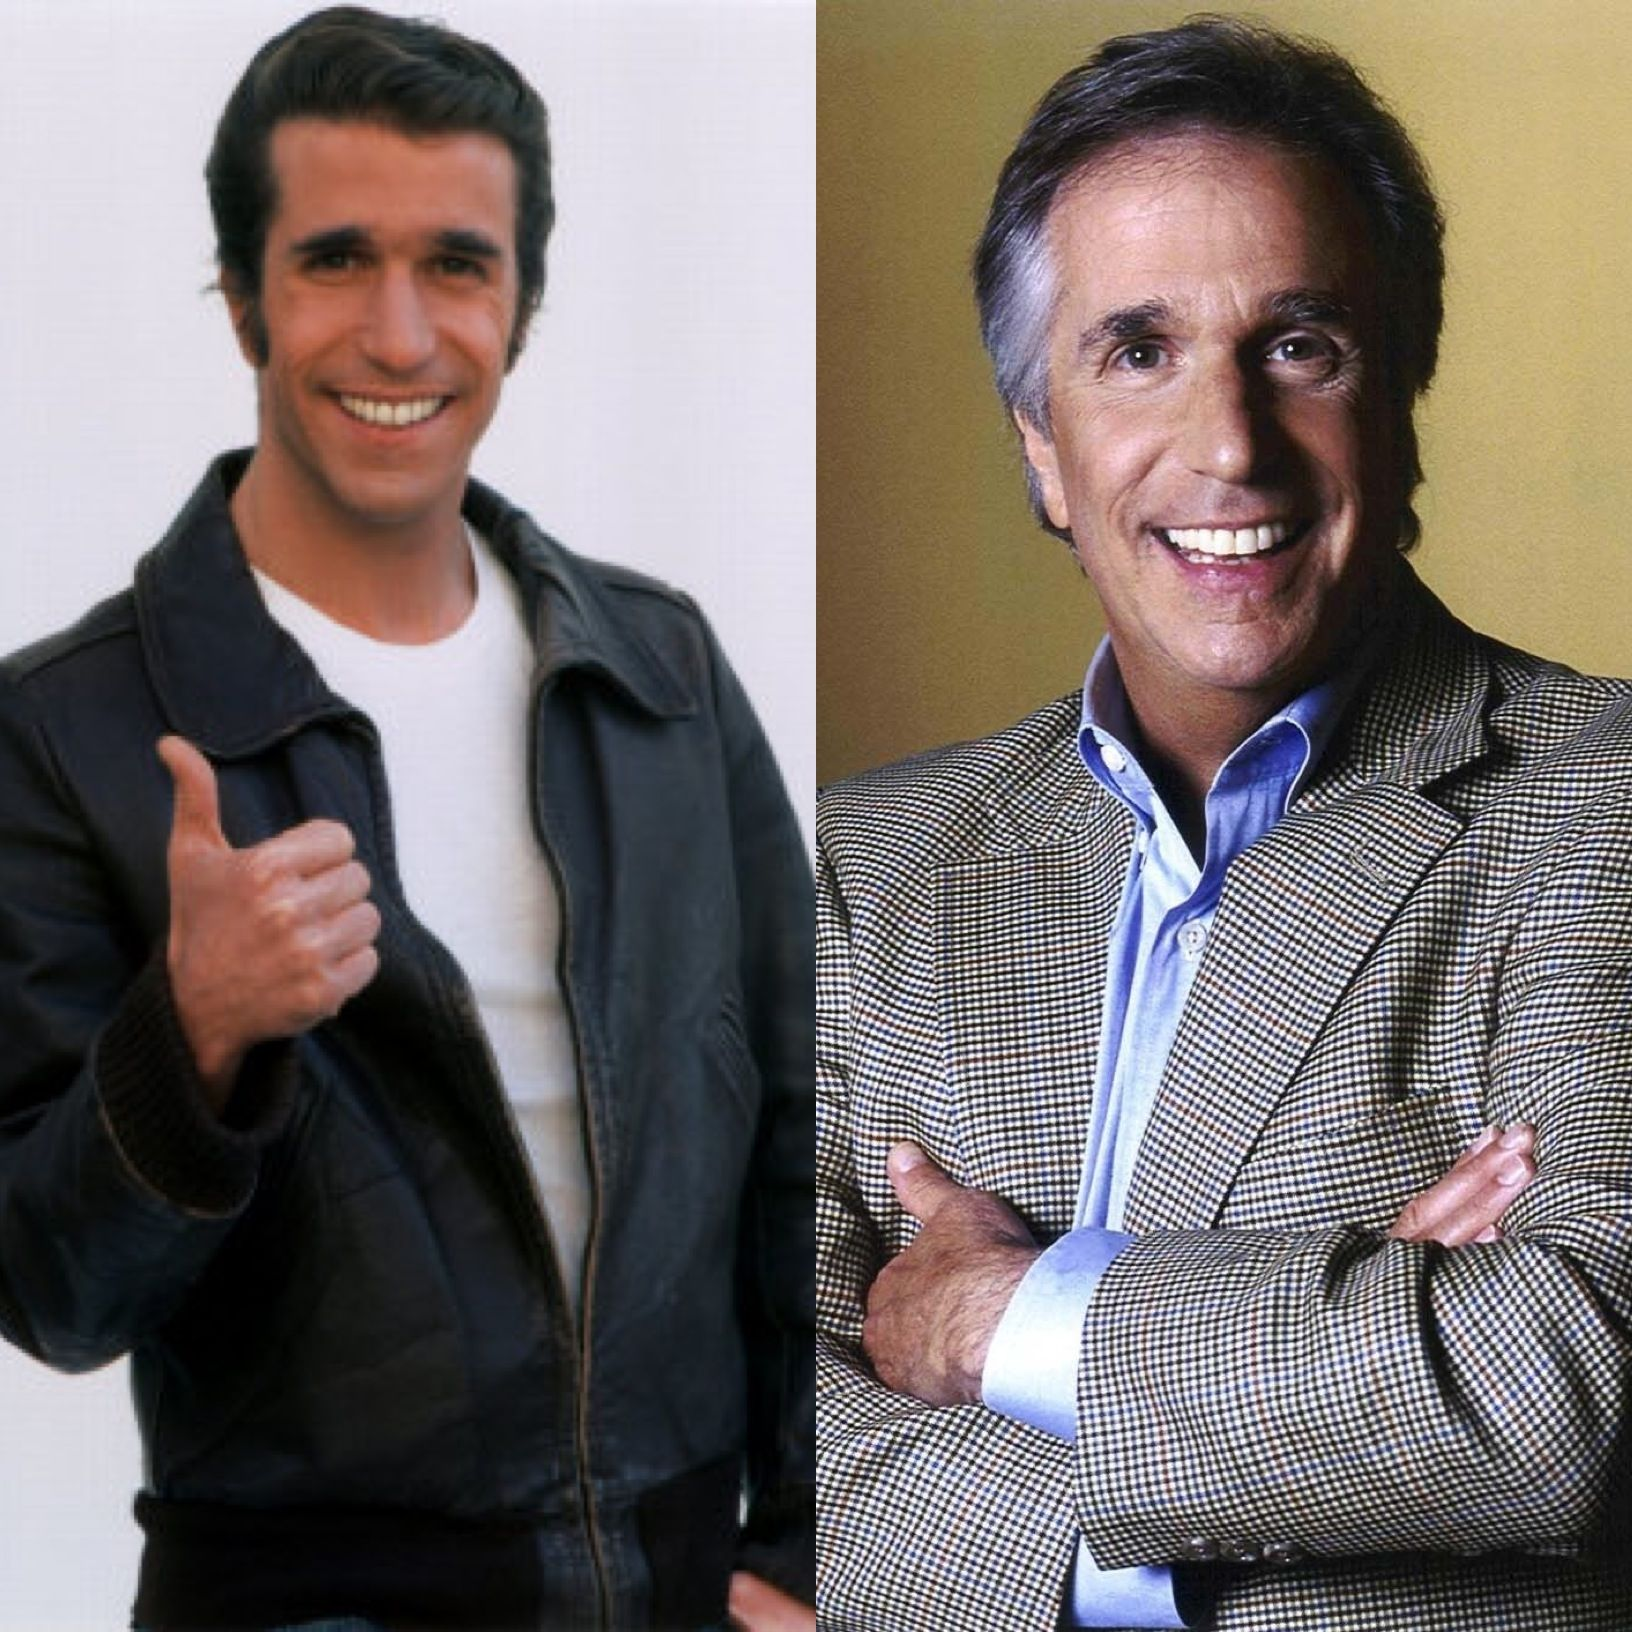 Henry winkler divorced - Henry Winkler Who Played Fonzie On Happy Days Thenandnow Has Dyslexia